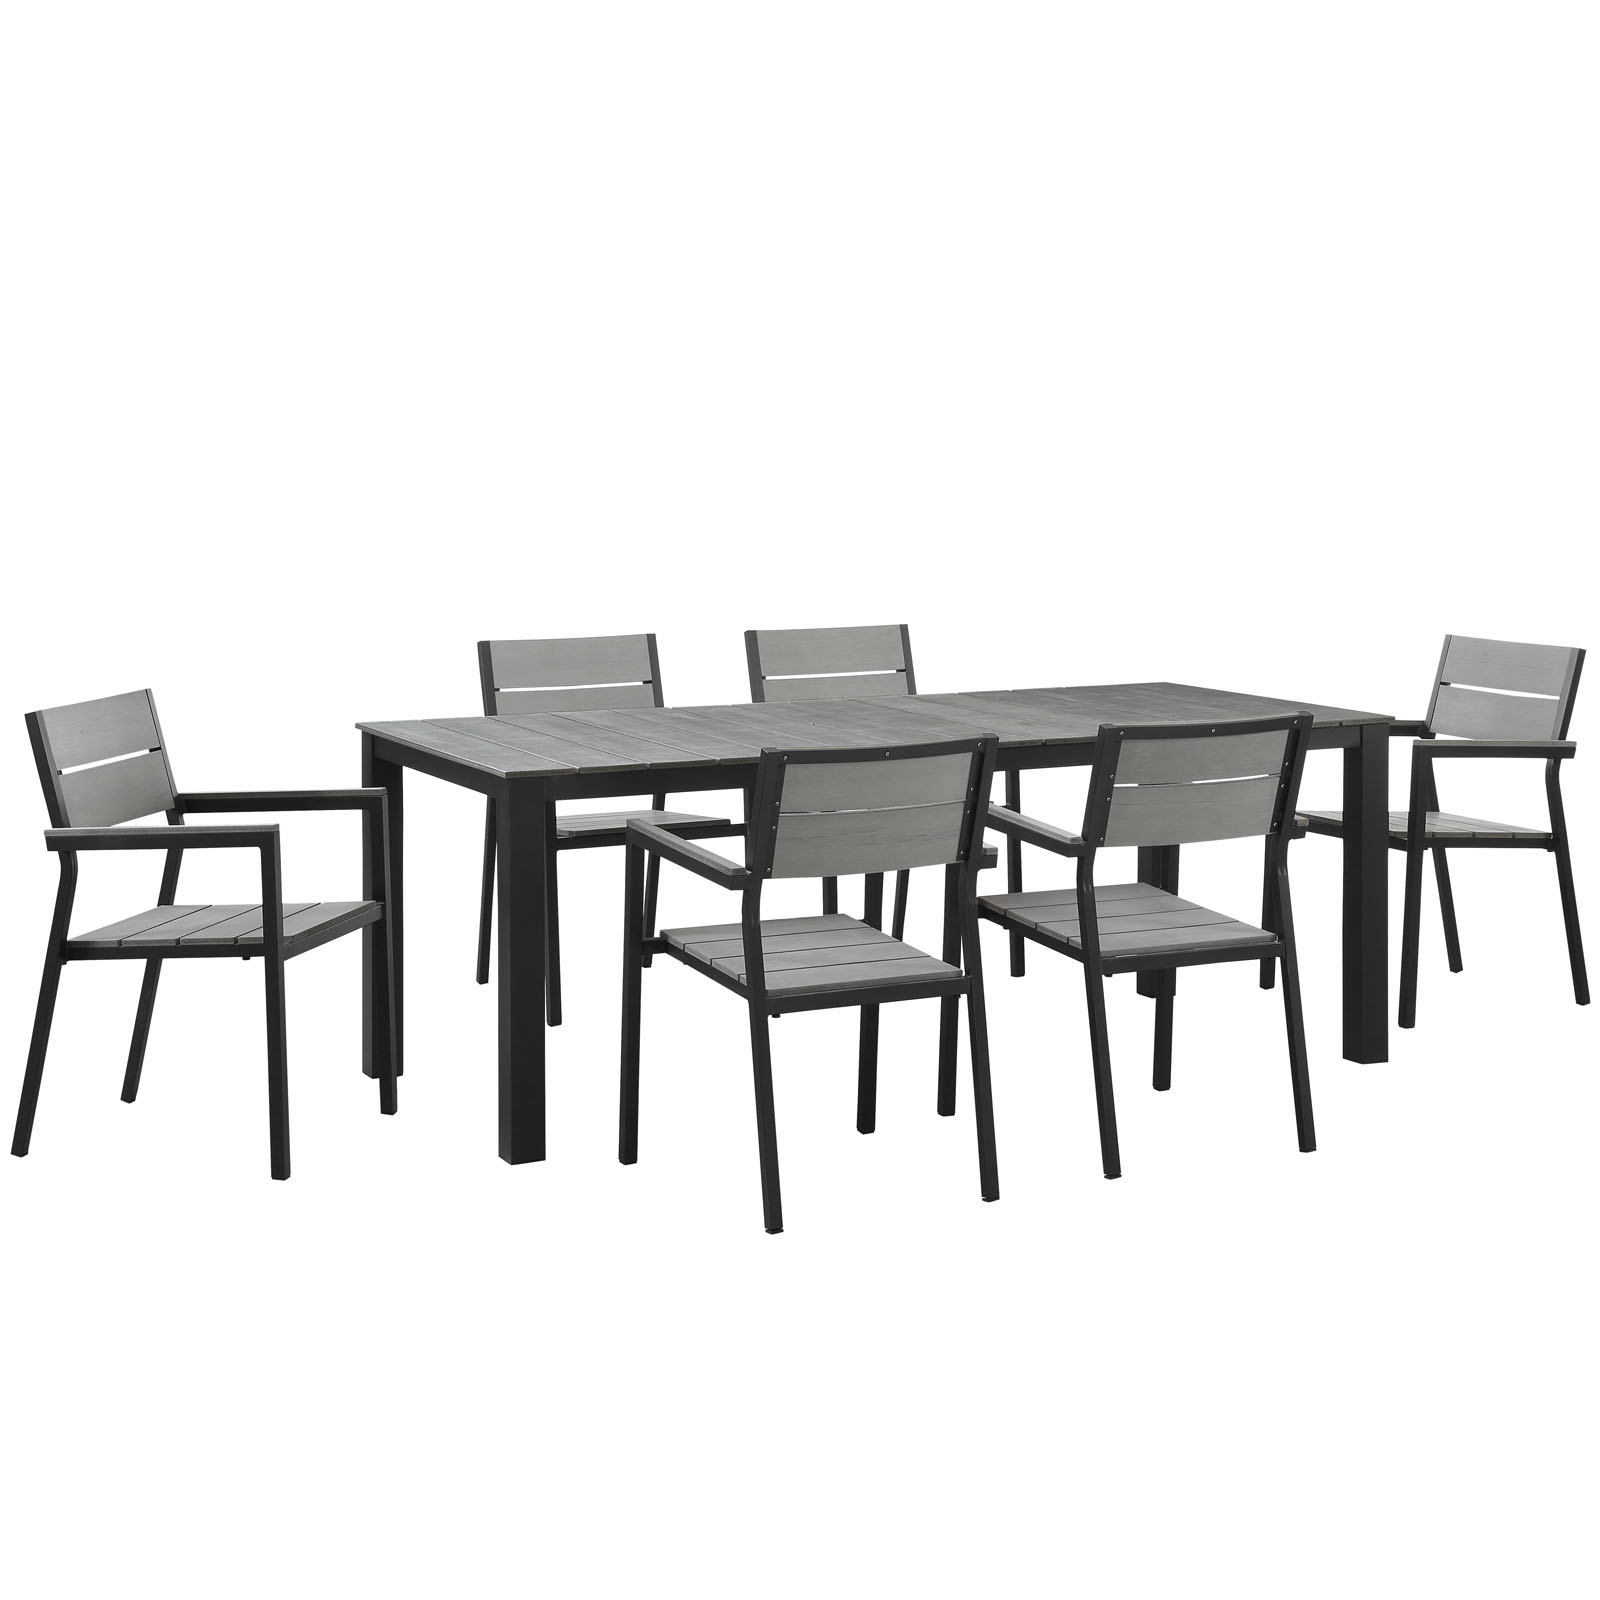 Modern Urban Contemporary 7 pcs Outdoor Patio Dining Room Set, Brown Grey Steel by